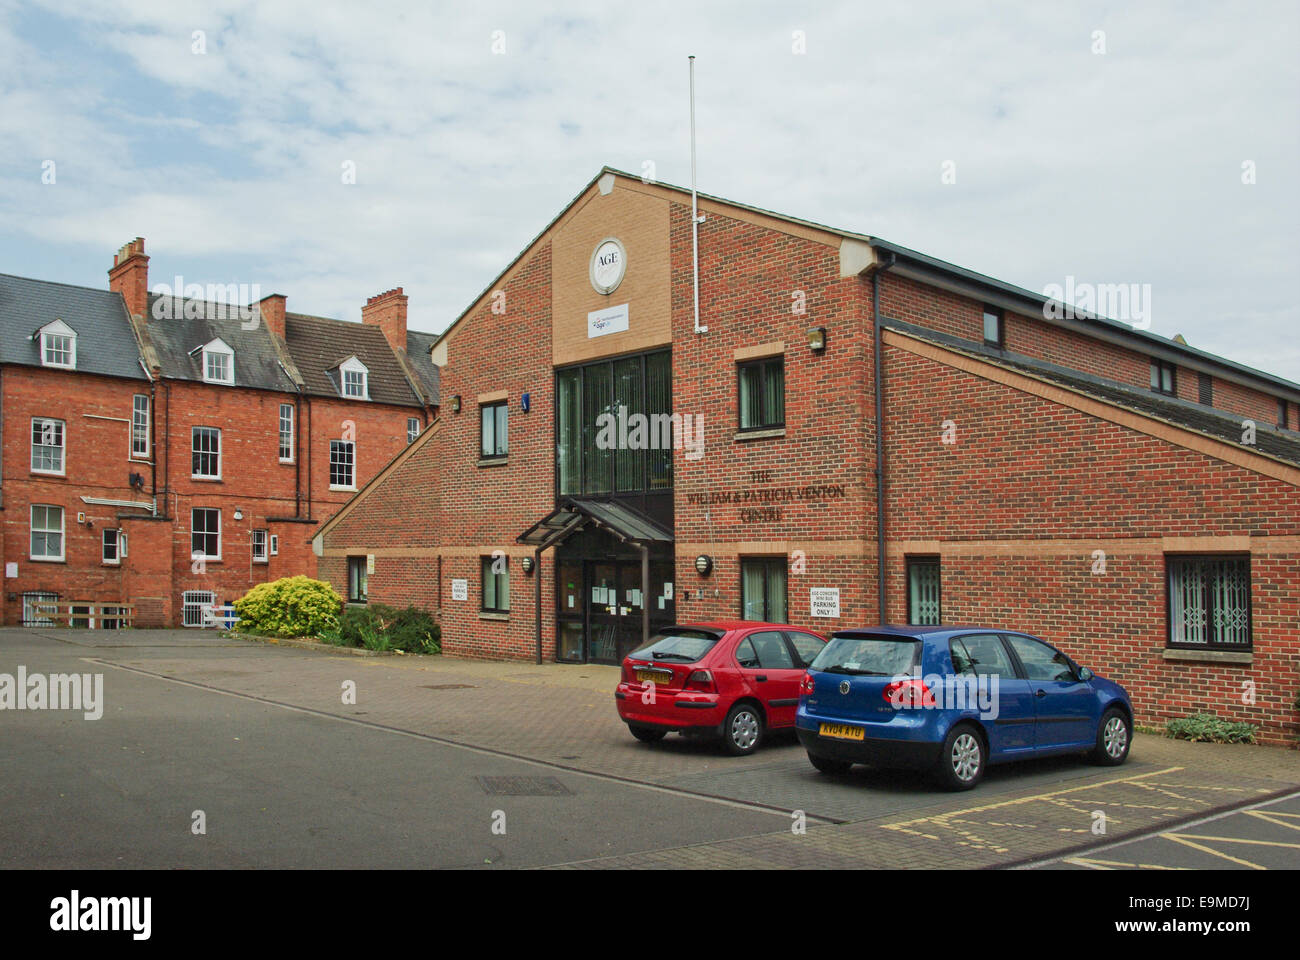 The Venton Centre, Northampton, UK; owned by Age UK Northamptonshire and housing one of their lifetime centres. - Stock Image